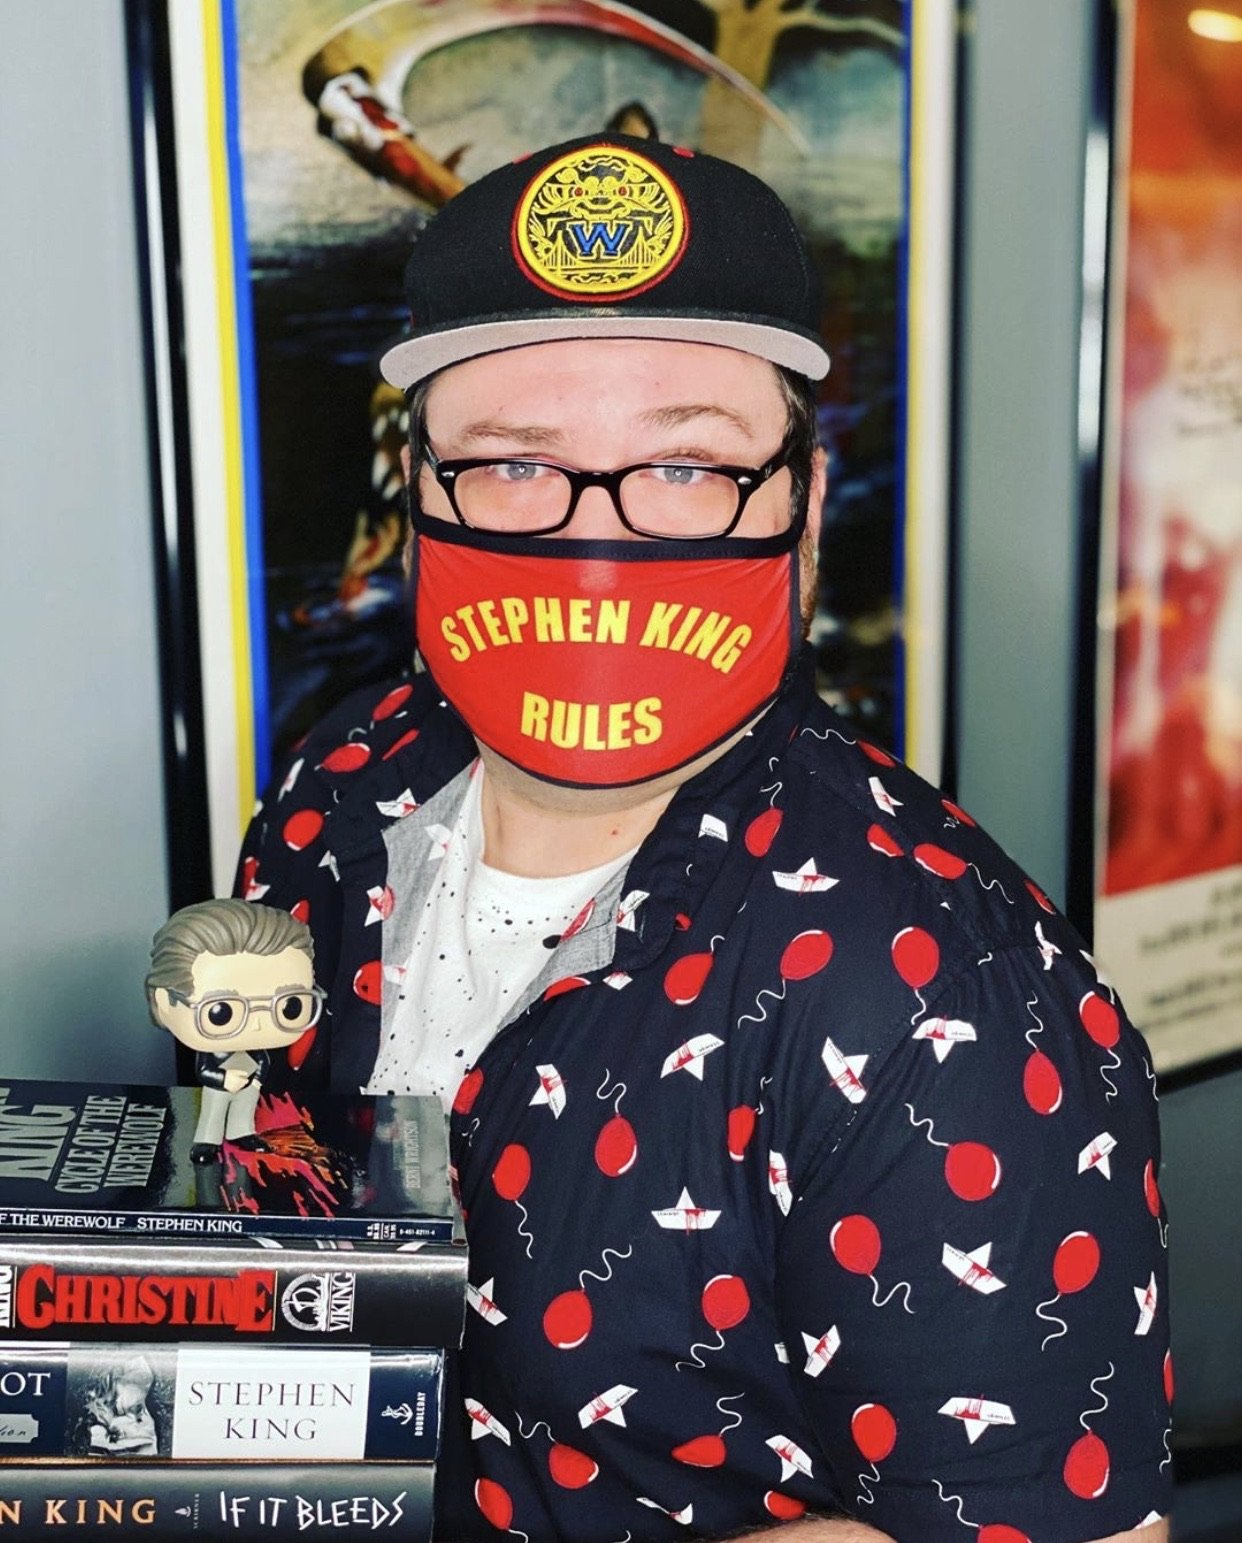 Stephen King Rules Face Mask